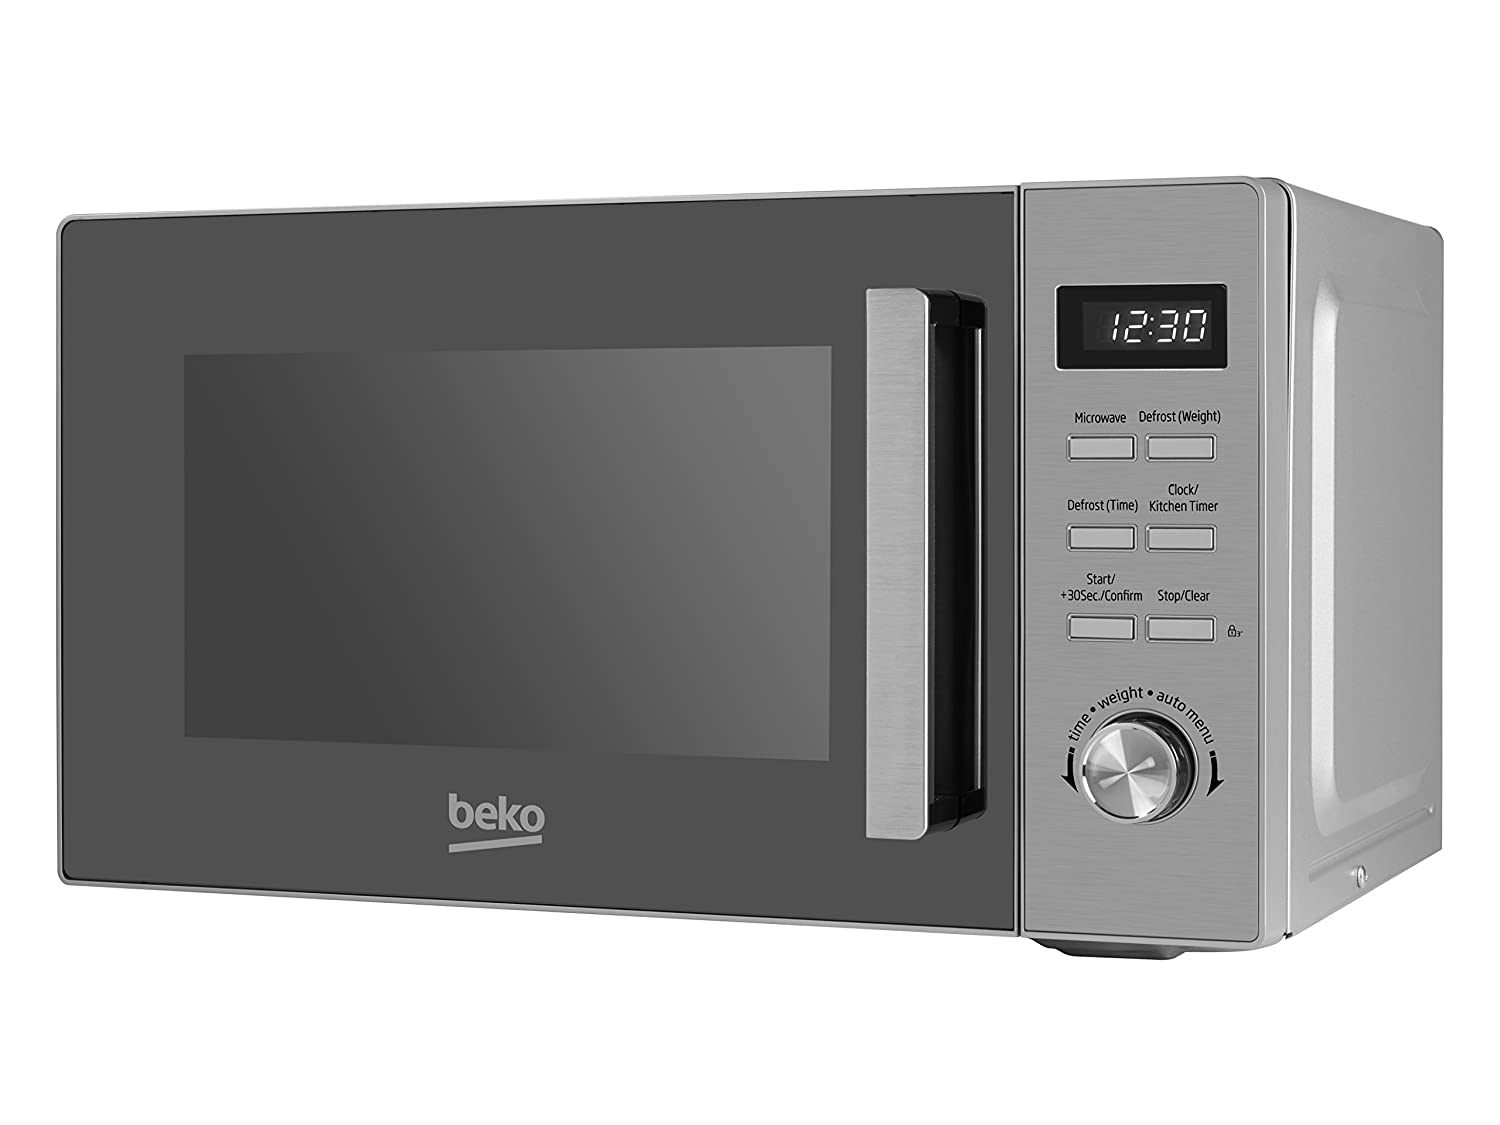 Beko MOF20110X Solo Microwave with Digital Programmer, 20 Litre, 800 W, Stainless Steel [Energy Class A]